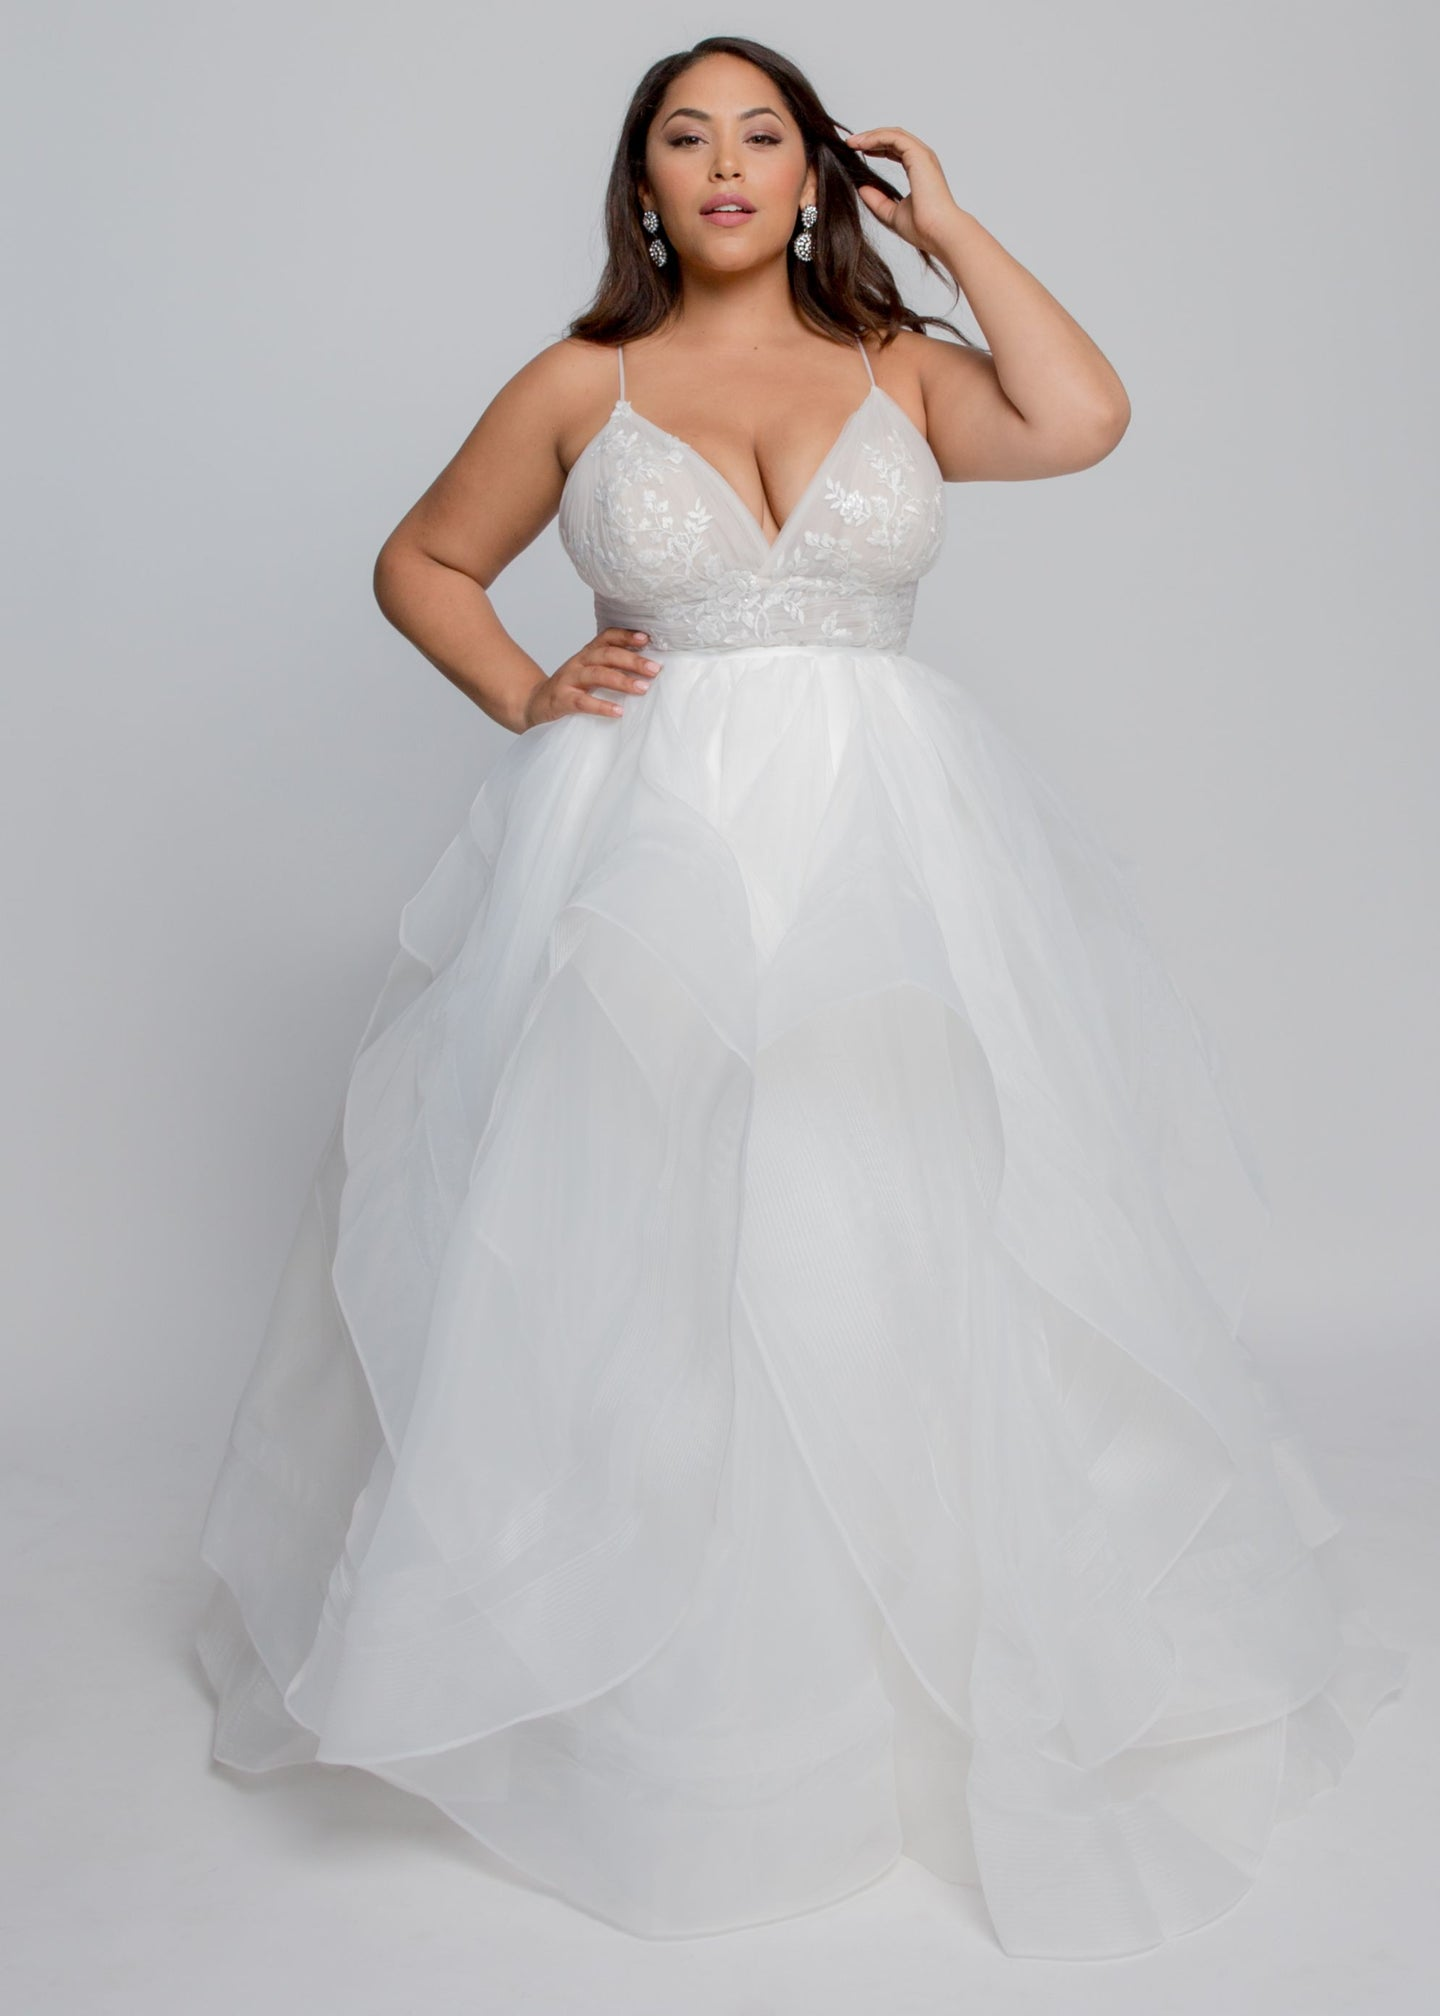 Gorgeous bridal gowns for all body shapes: plus size, curvy, or petite brides. Try on our wedding dresses at home. Size 0-30. Comfortable. Convenient. Fun. Lace or satin. Mermaid or A-line.  This gown features enchanting lace with a sultry V neckline and flowing organza skirt with horsehair hem. This lace is soft to the touch and features lovely roses to the pleated waist detail. Sultry spaghetti straps add something special to this modern and statement ball gown.